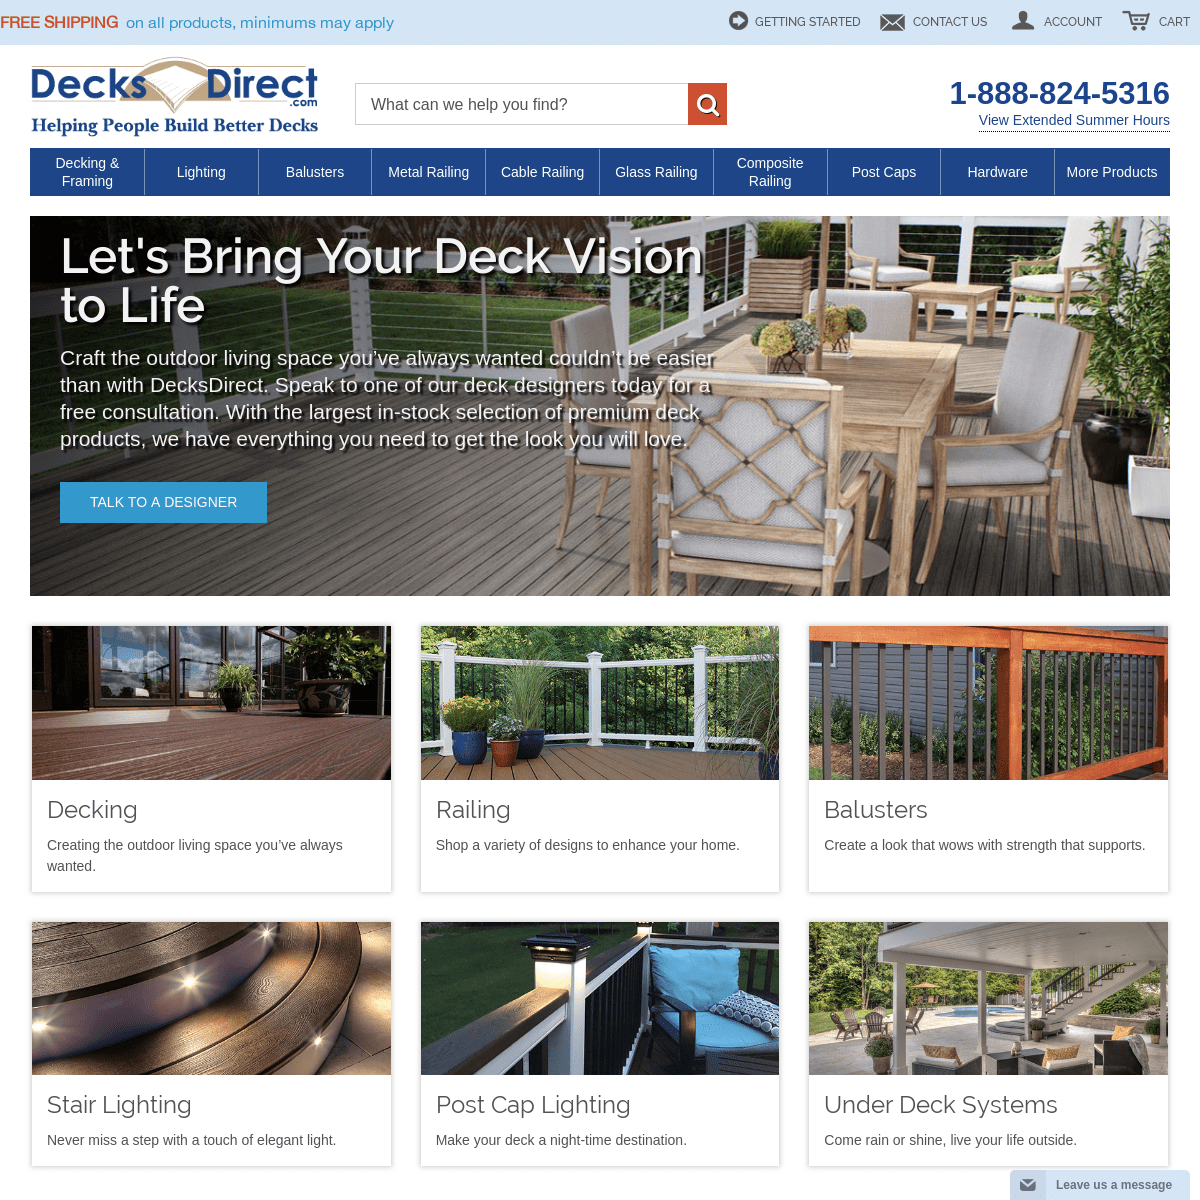 Deck Supplies - Railing, Lighting, Hardware, & More! - DecksDirect